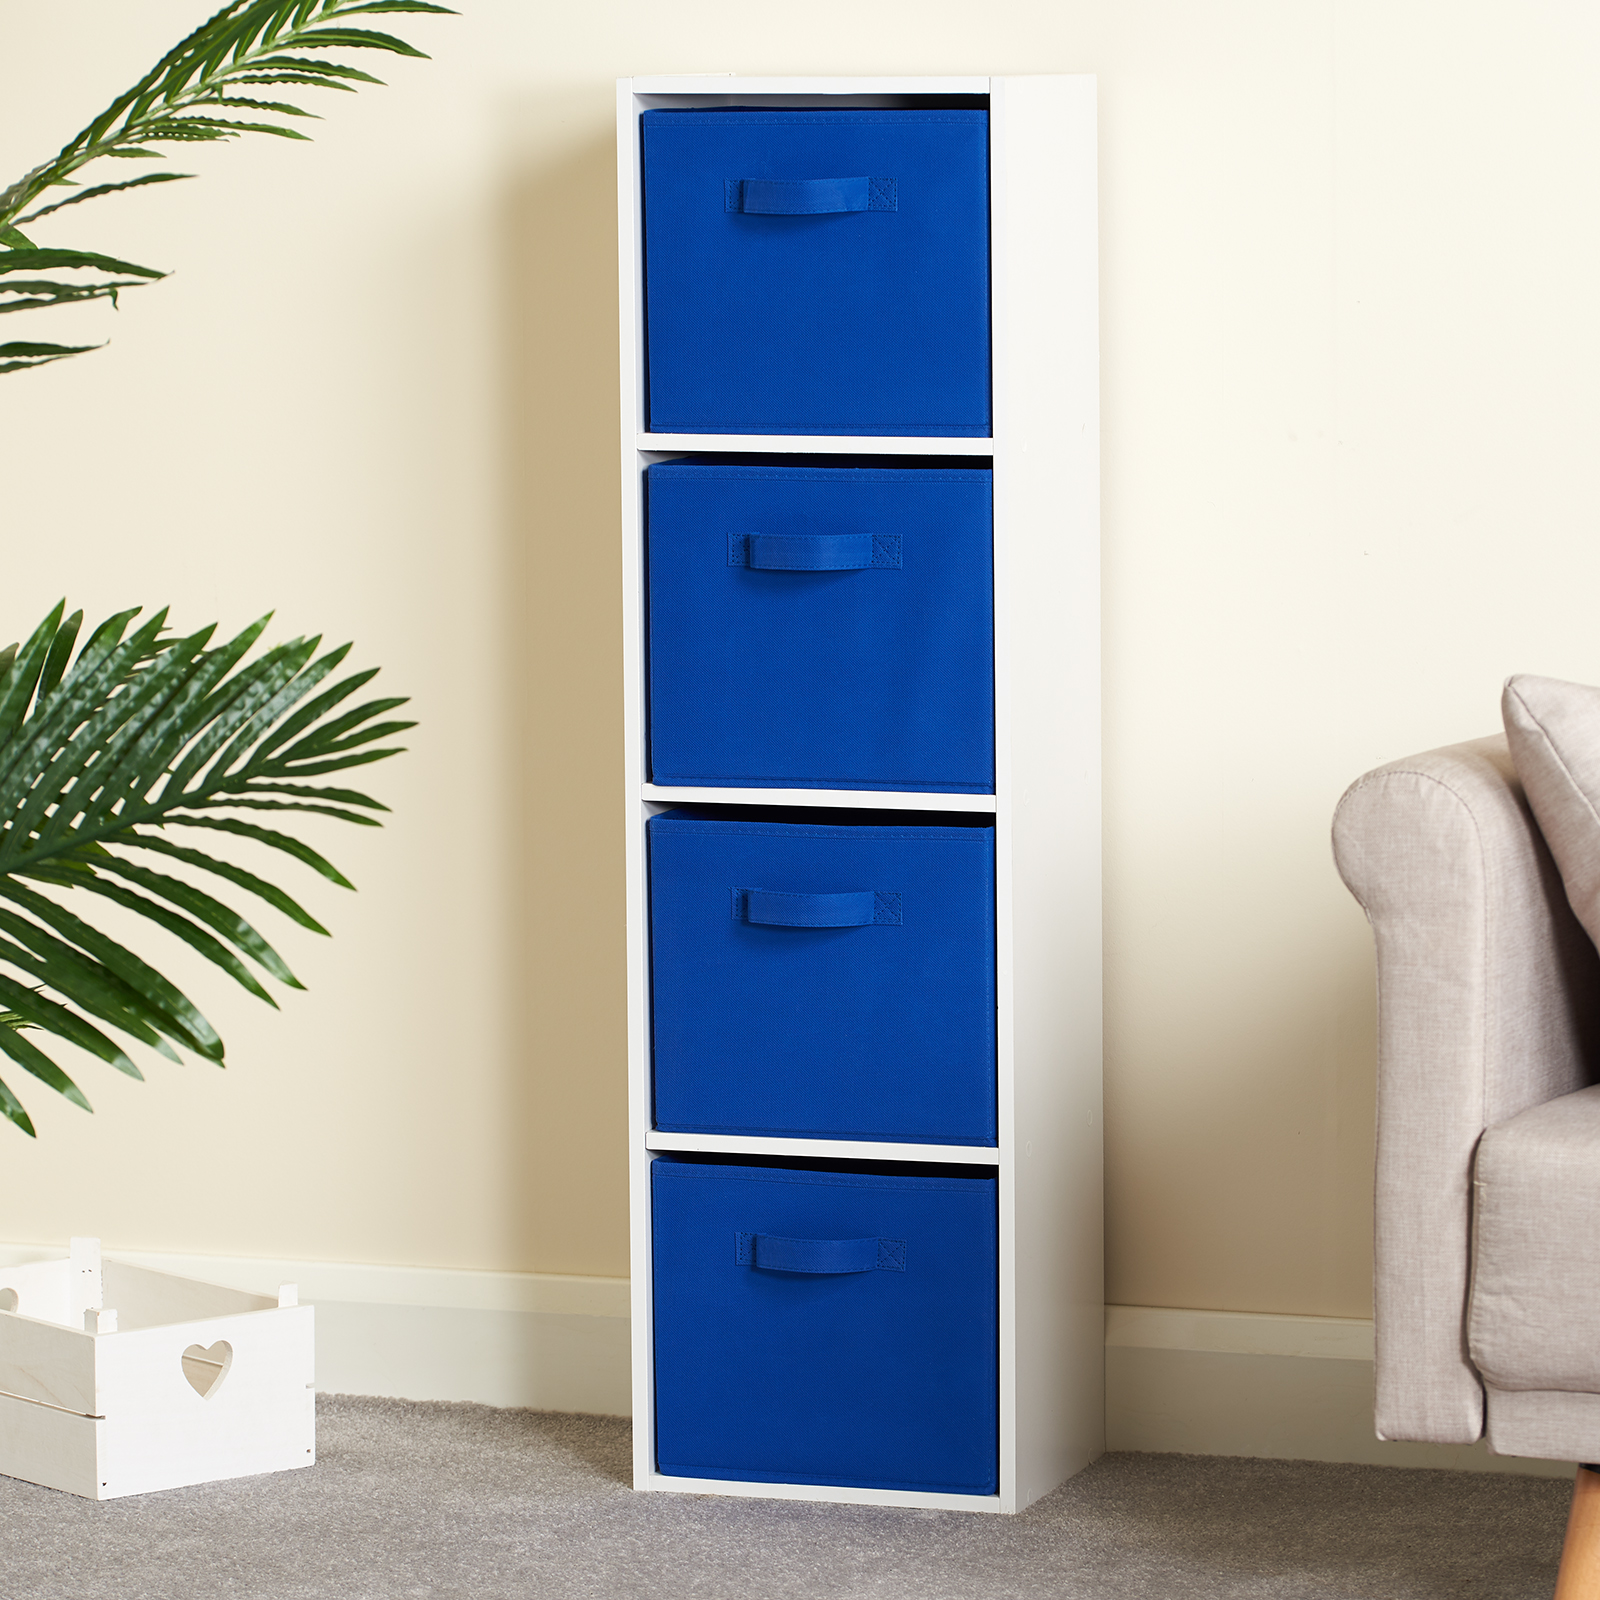 Hartleys-4-Tier-White-Bookcase-Wooden-Display-Shelving-Unit-amp-Fabric-Storage-Box thumbnail 11